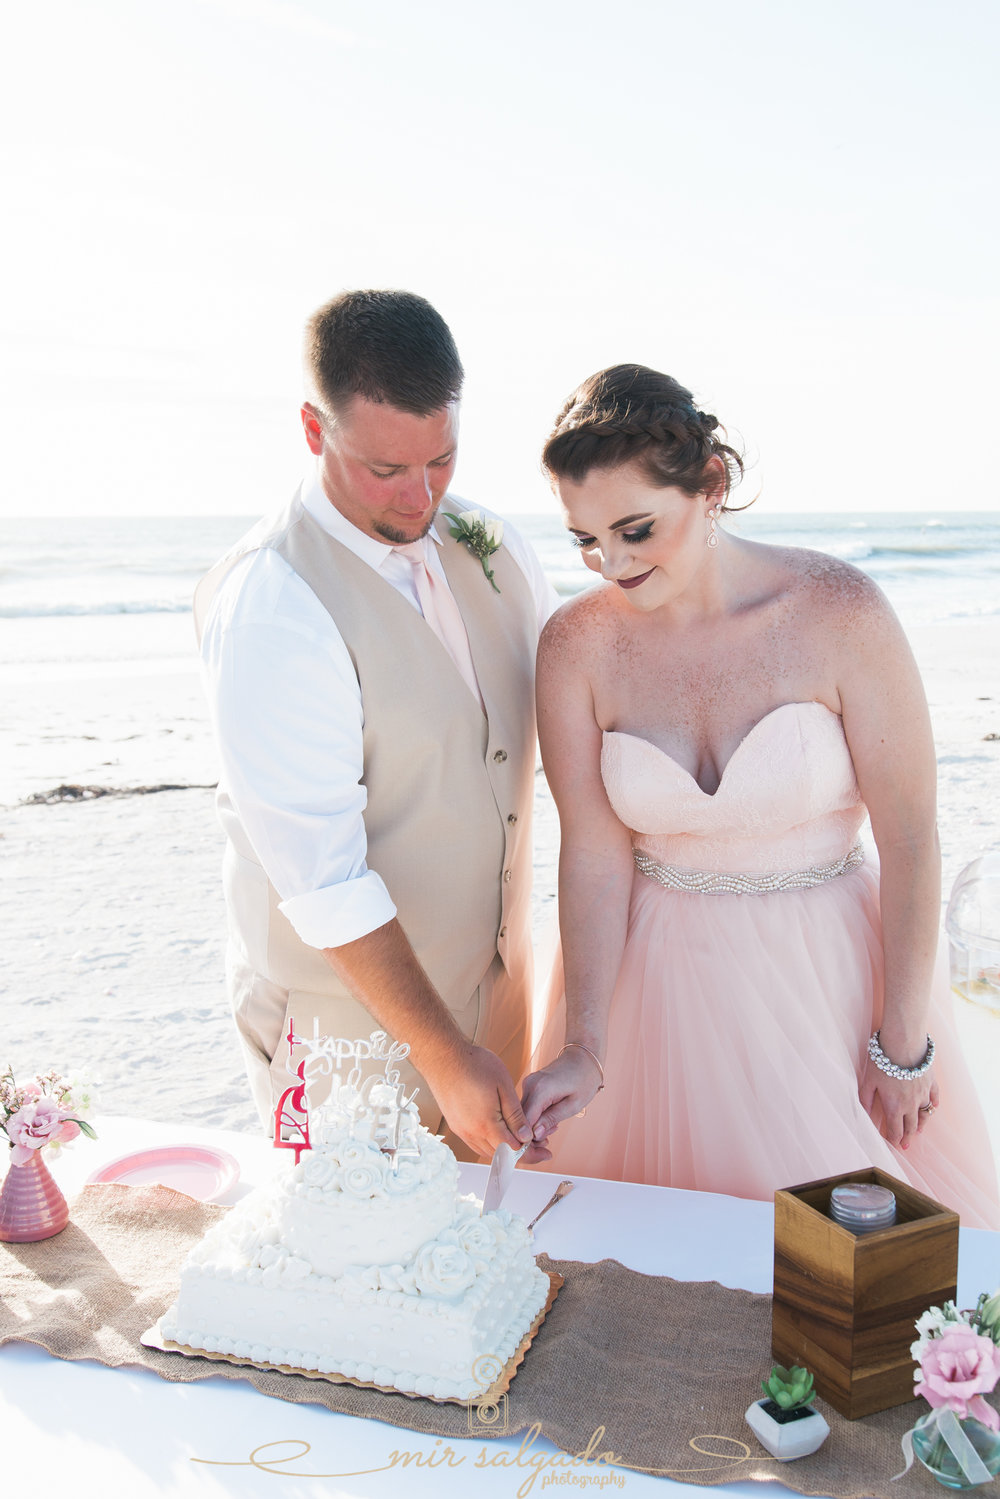 Wedding-cake-photo, beach-wedding-photographer